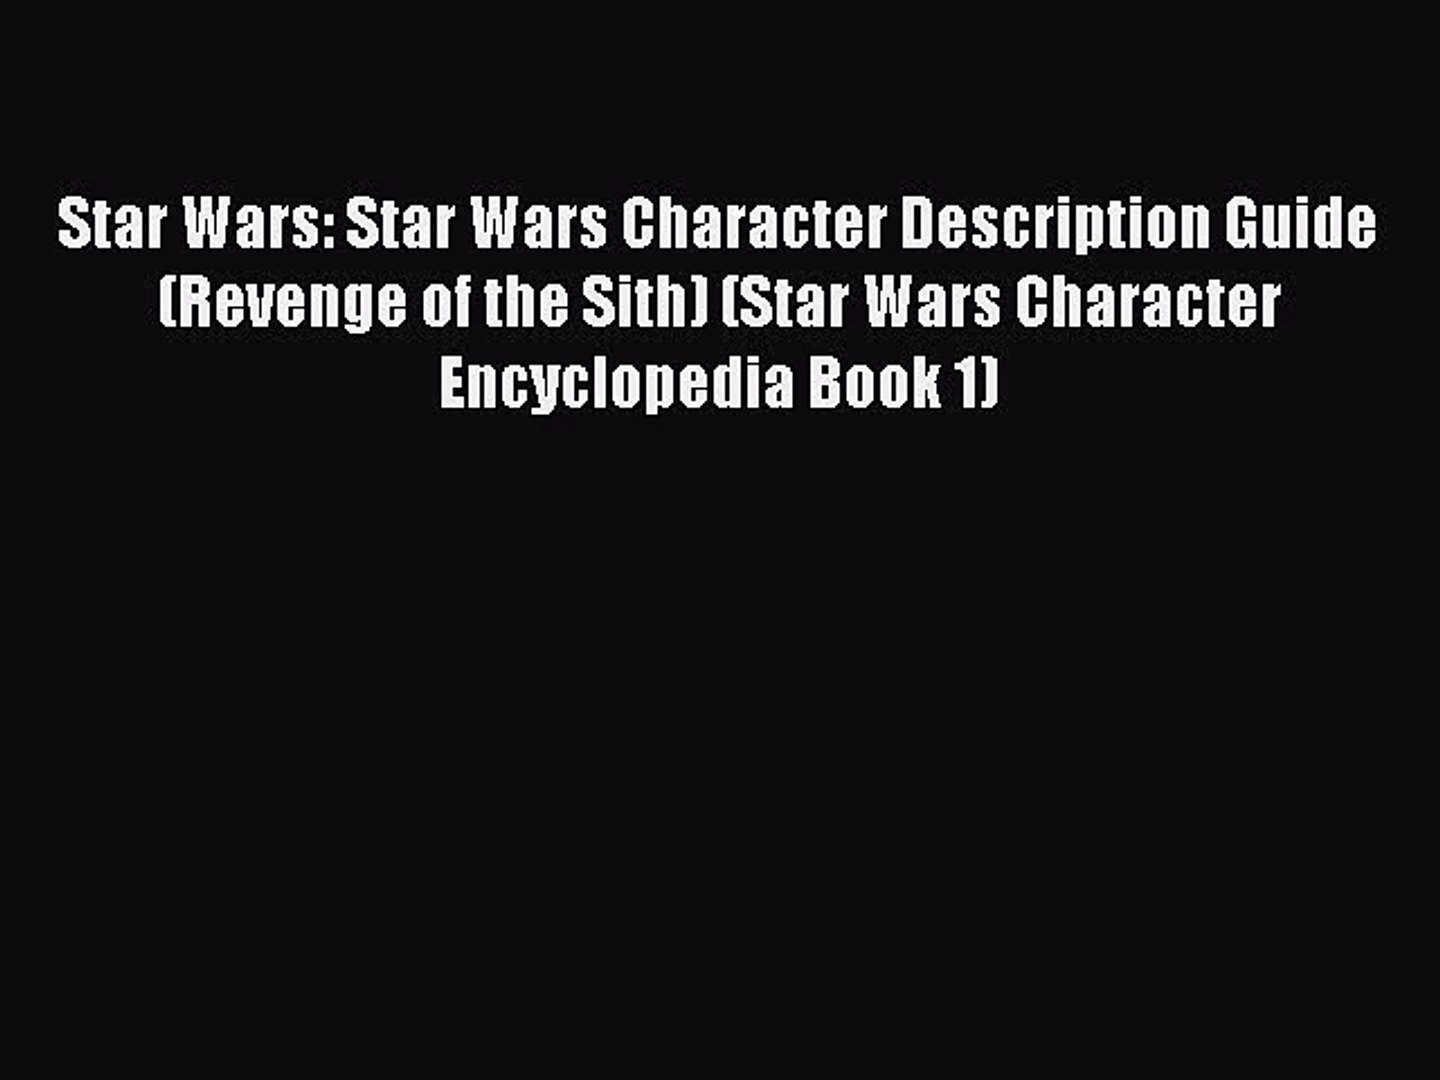 [Read book] Star Wars: Star Wars Character Description Guide (Revenge of the Sith) (Star Wars